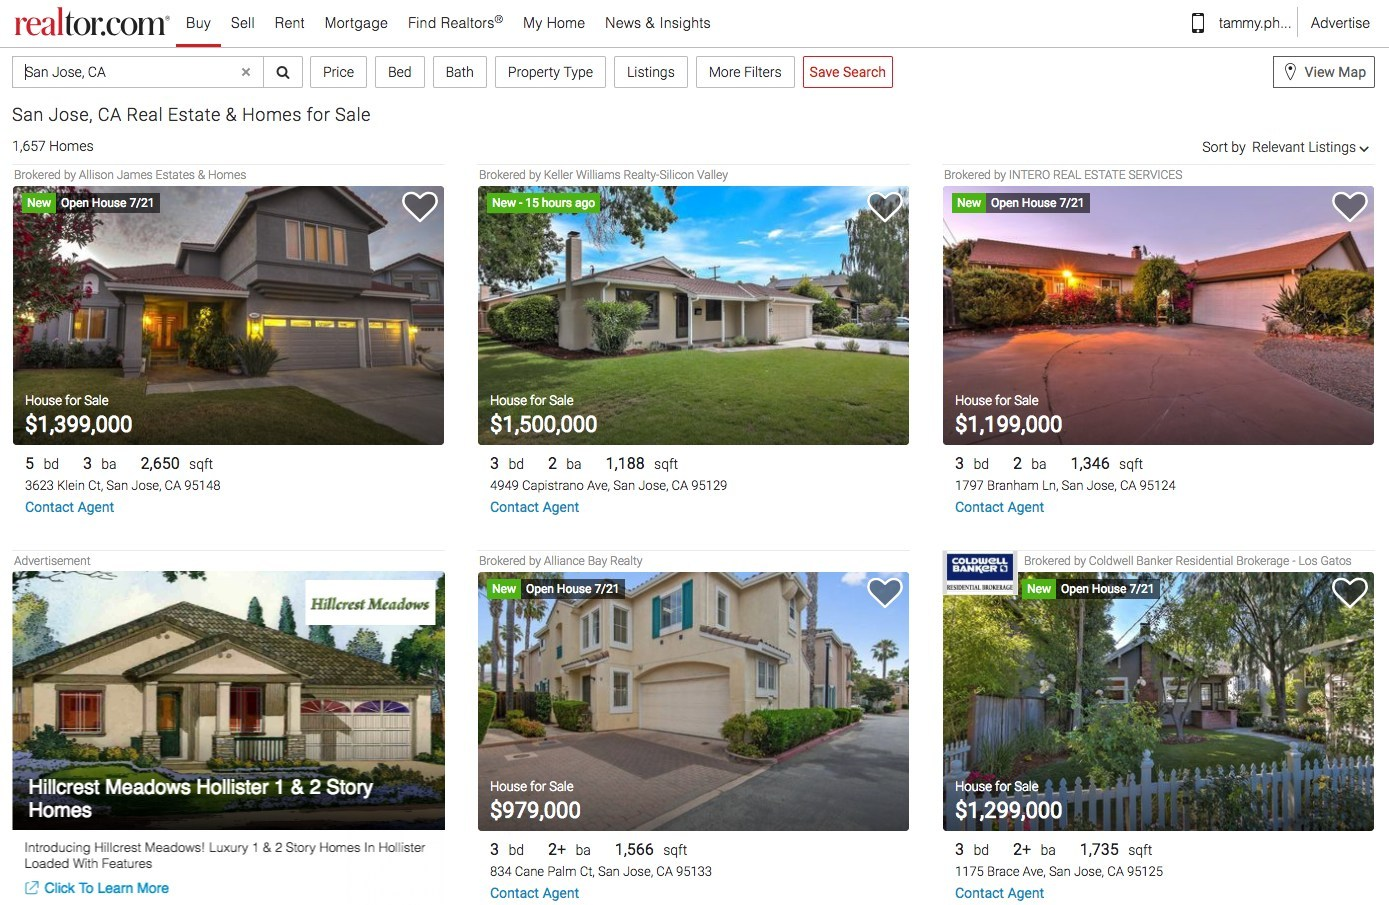 Realtor.com's new desktop experience shows you five properties at first glance, allowing you to see when the listing was added to the site as well as any open houses. (PRNewsfoto/realtor.com)